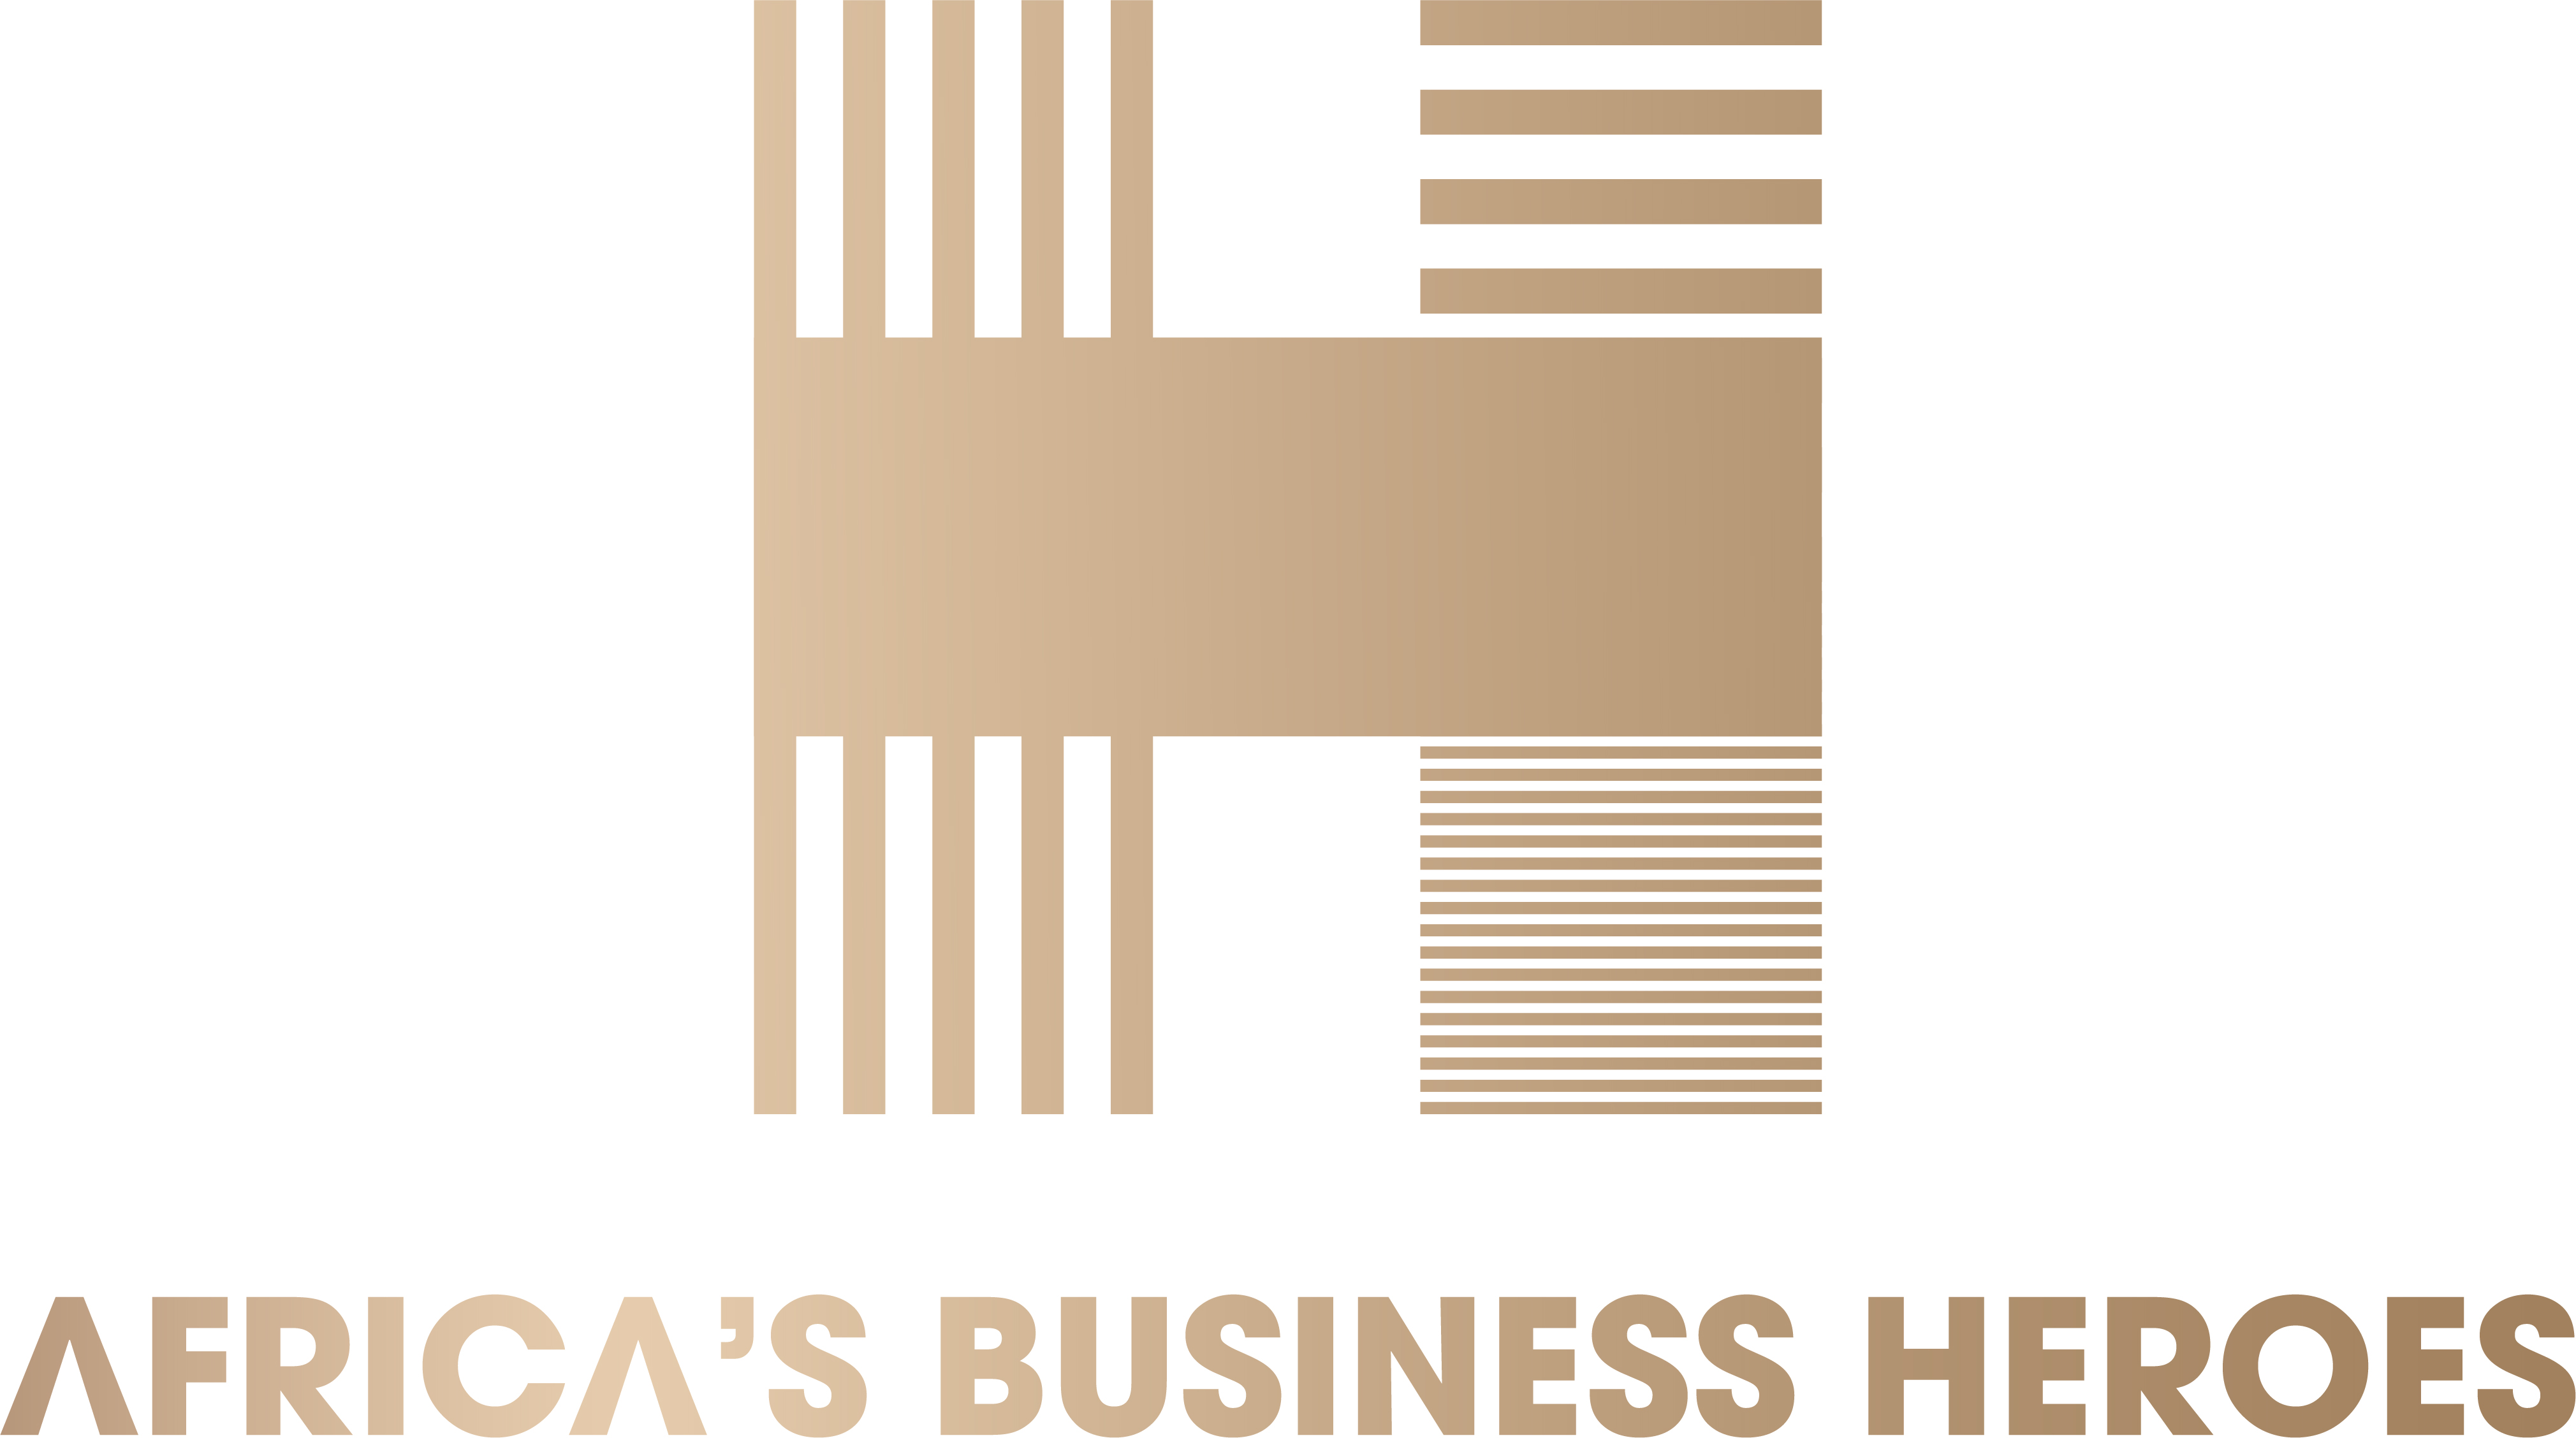 Africa's Business Heroes (ABH)